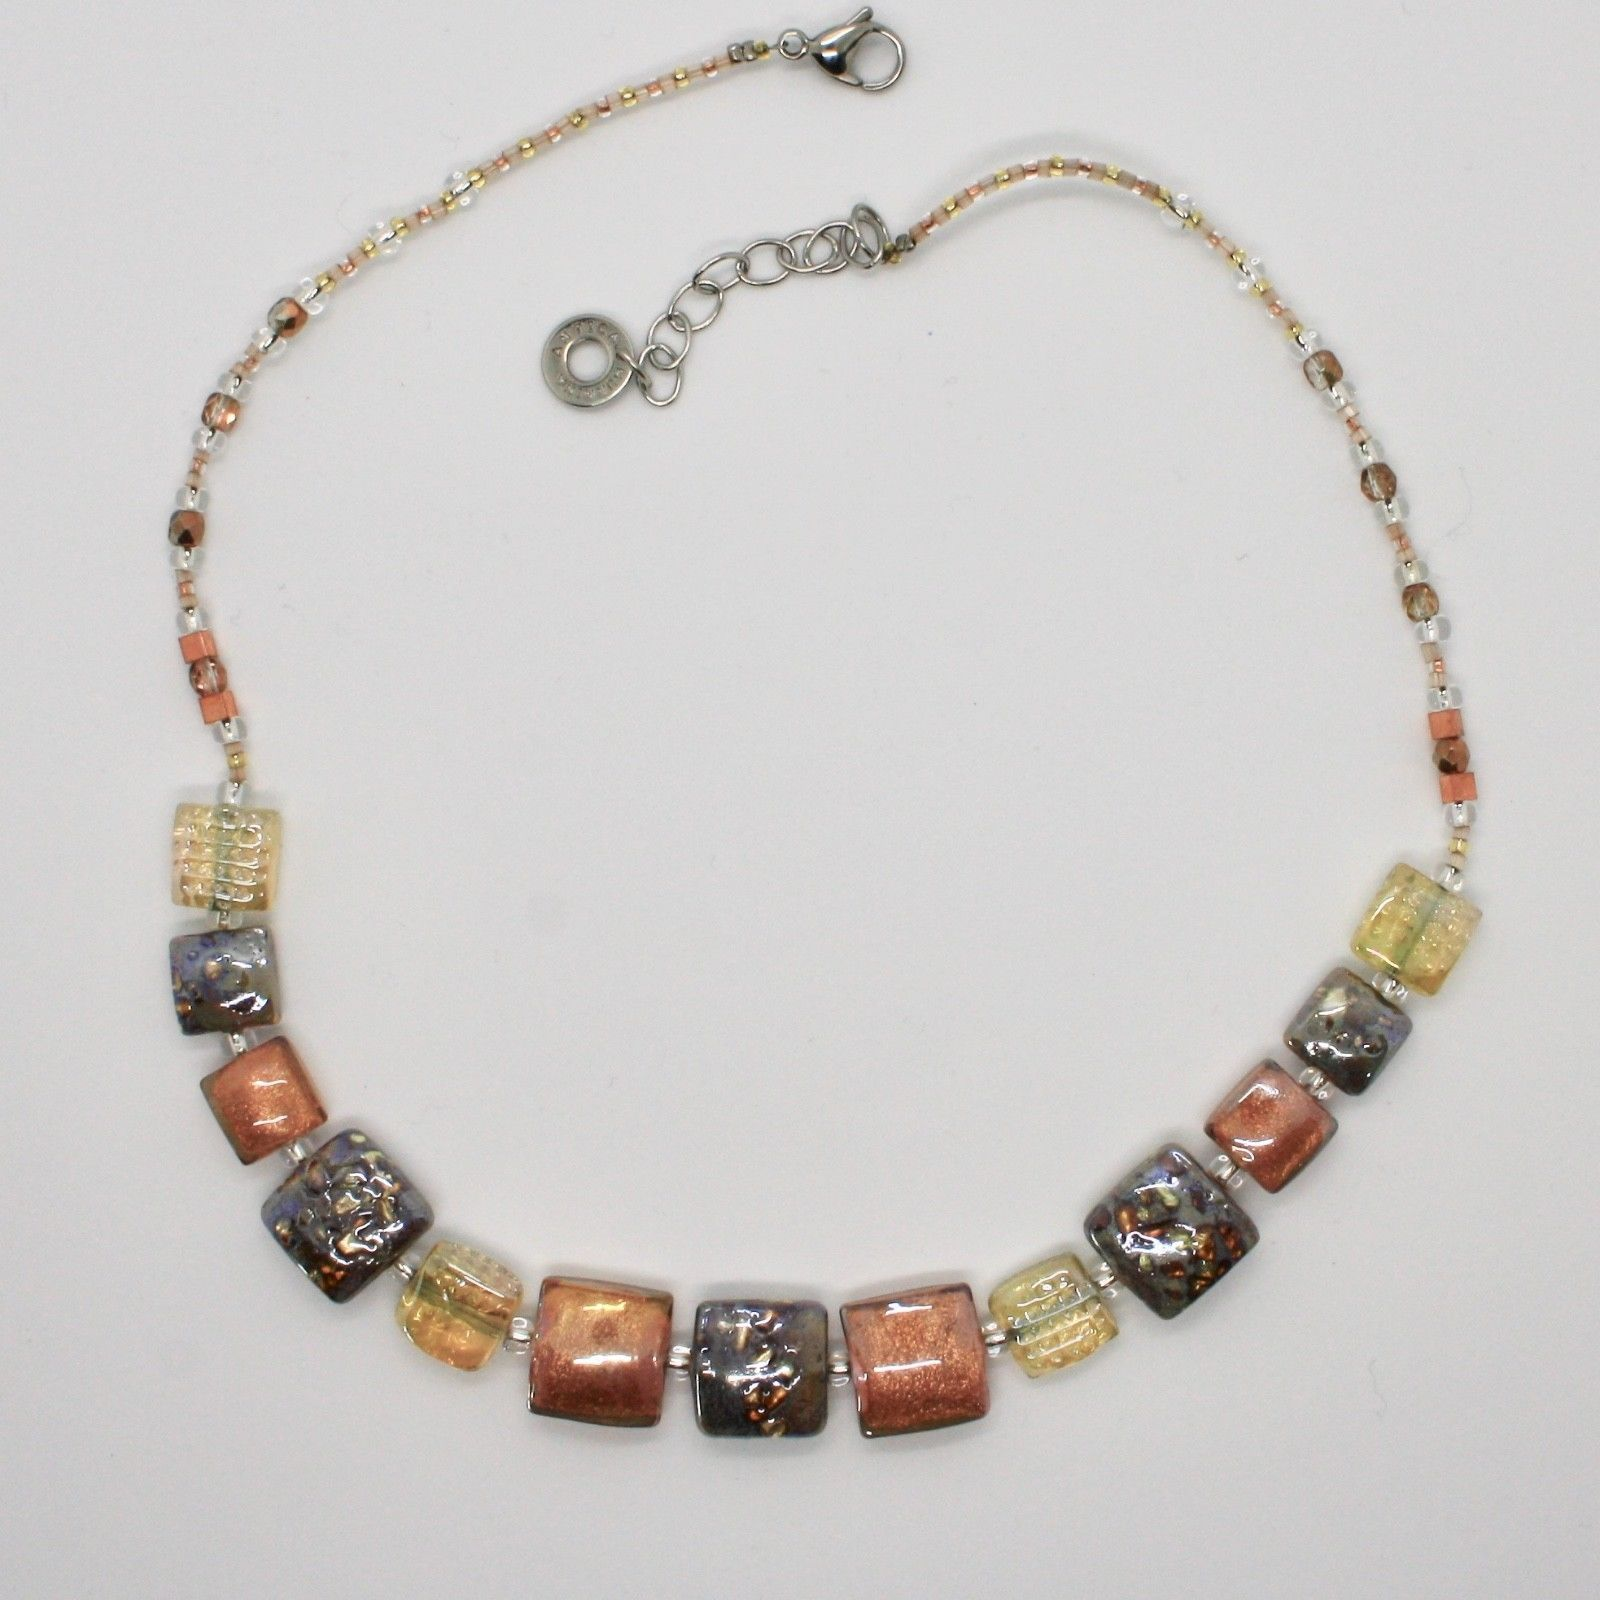 ANTICA MURRINA VENEZIA NECKLACE WITH MURANO GLASS YELLOW BEIGE GOLD GREY